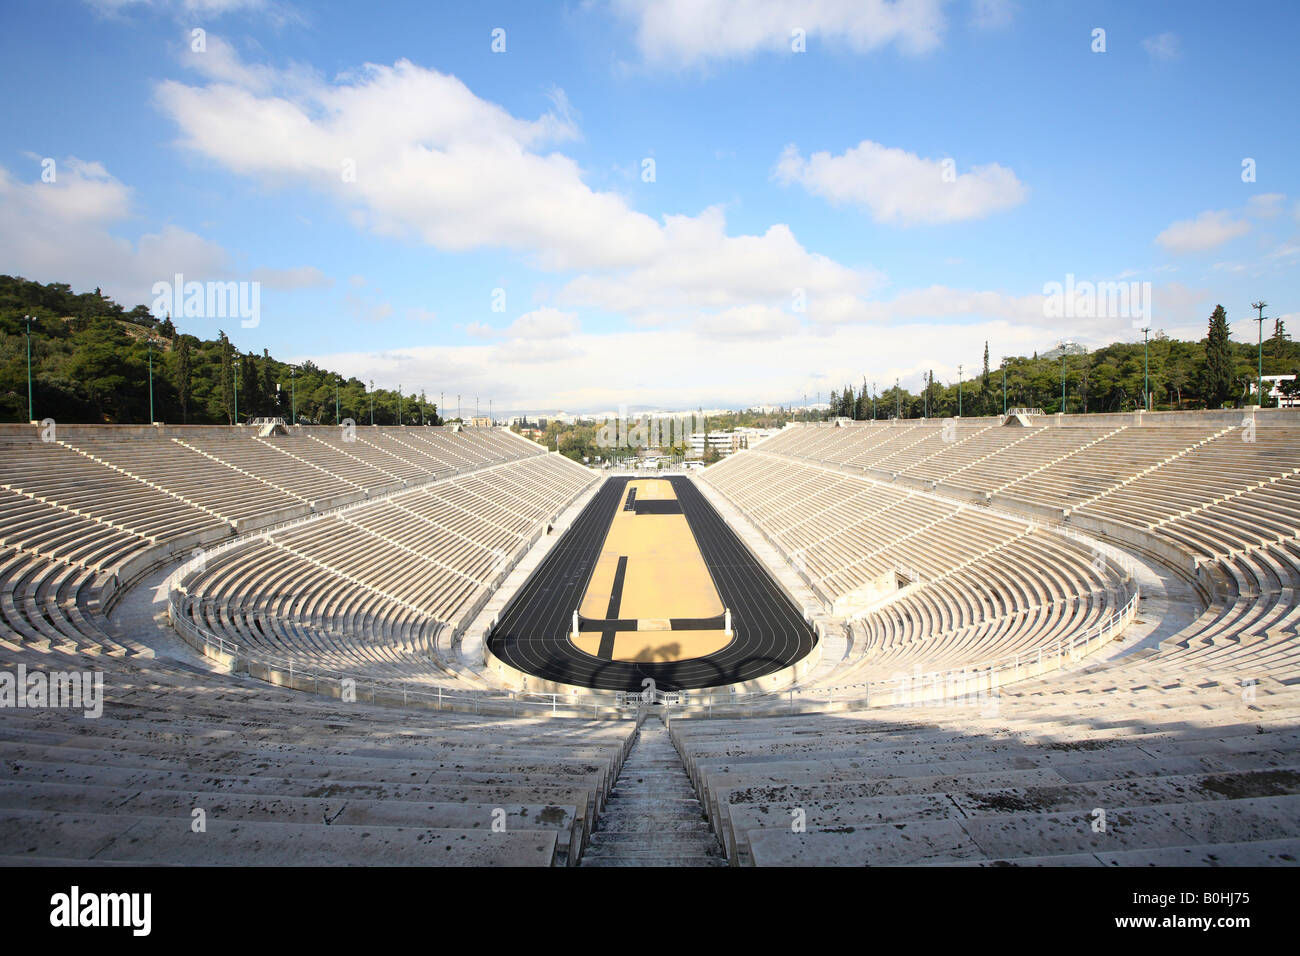 Panathinaikos, stadium of the first modern Olympic Games 1896, Athens, Greece - Stock Image